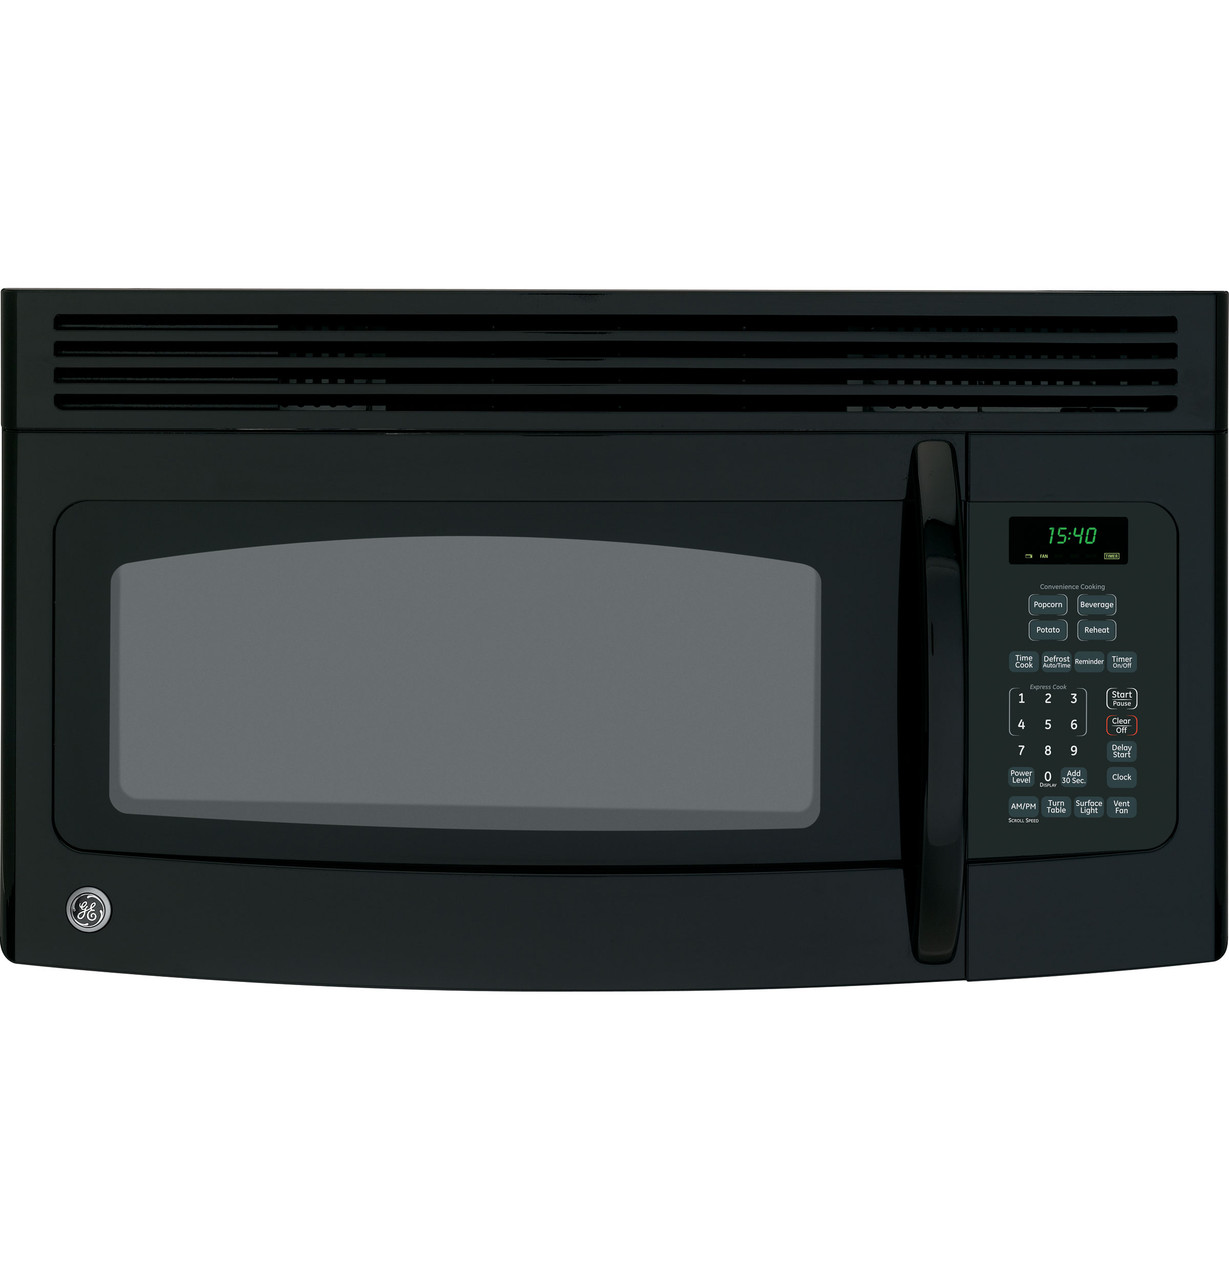 ge spacemaker over the range microwave oven jnm1541dnbb